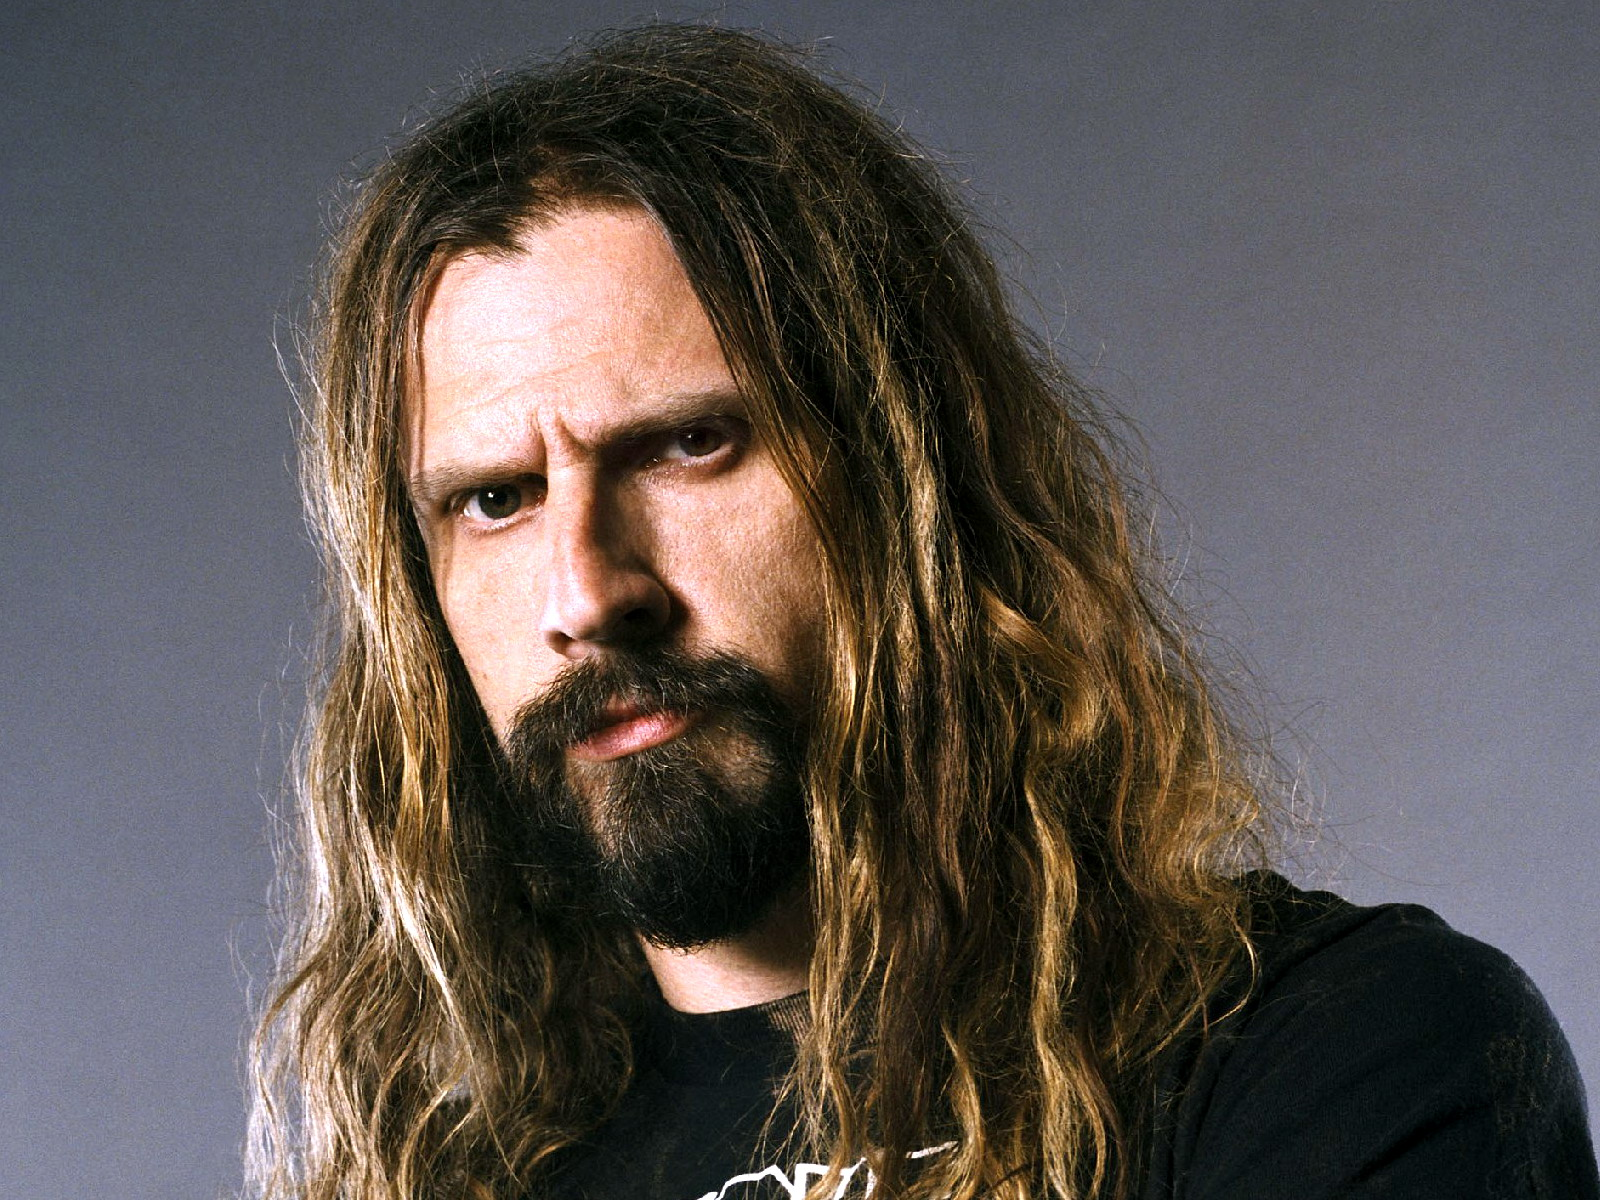 Rob Zombie Moves Forward With New Horror Film 31